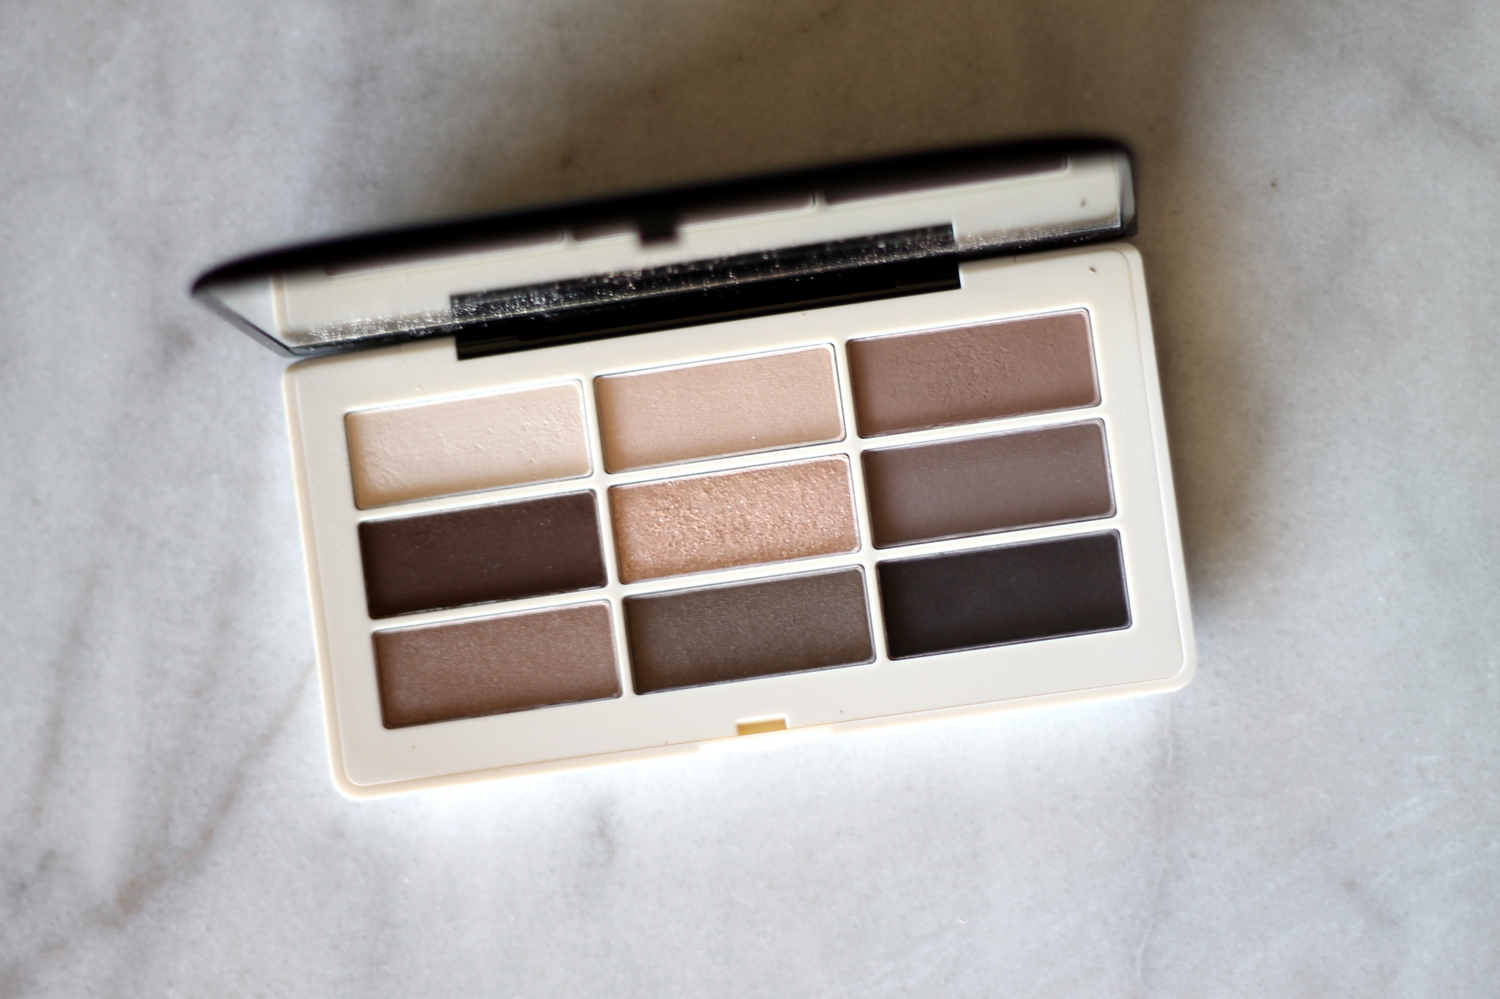 H&M Eyeshadow Palette | Re-Mix-Her